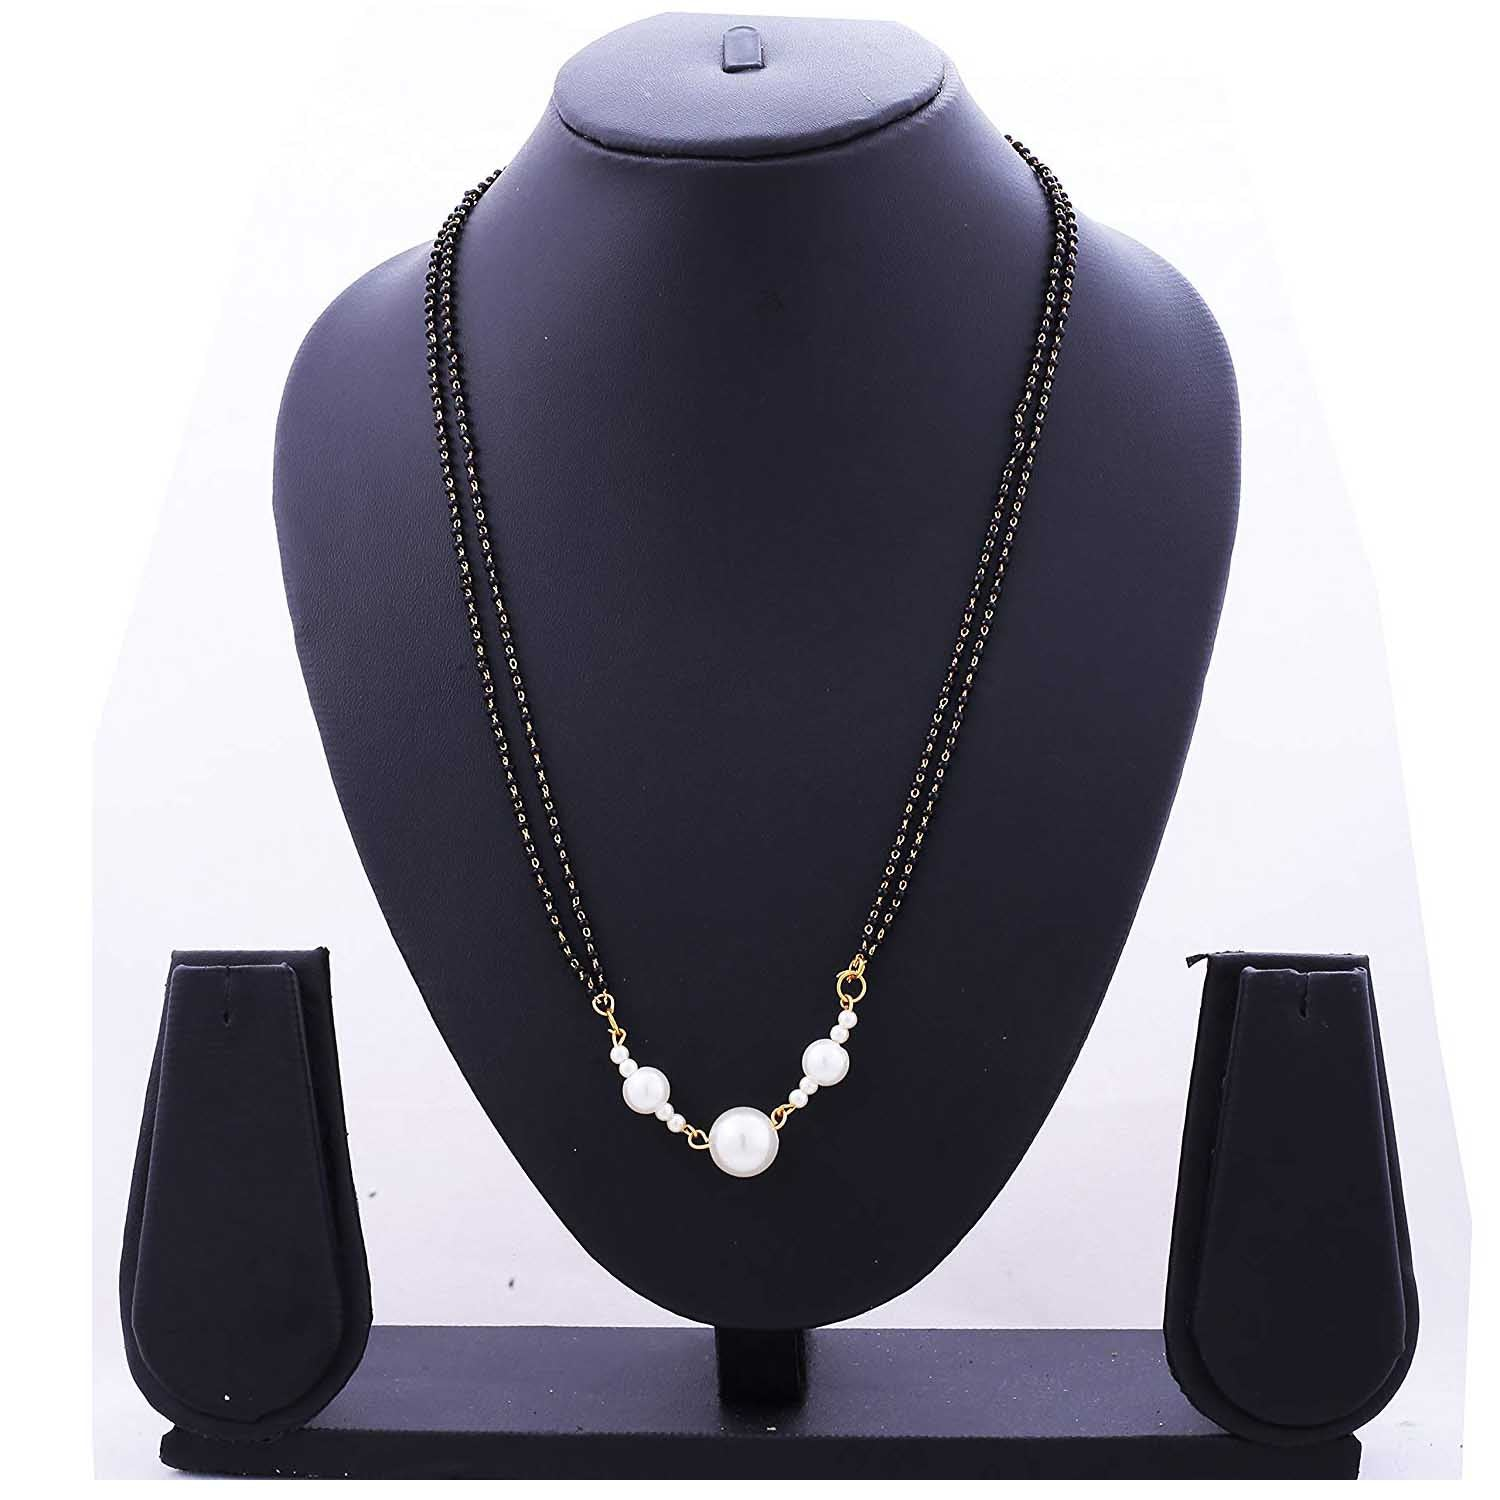 JFL- Stylish One Gram Gold Plated Pearl Black Beads Mangalsutra For Woman And Girls CHAIN 24 INCHES